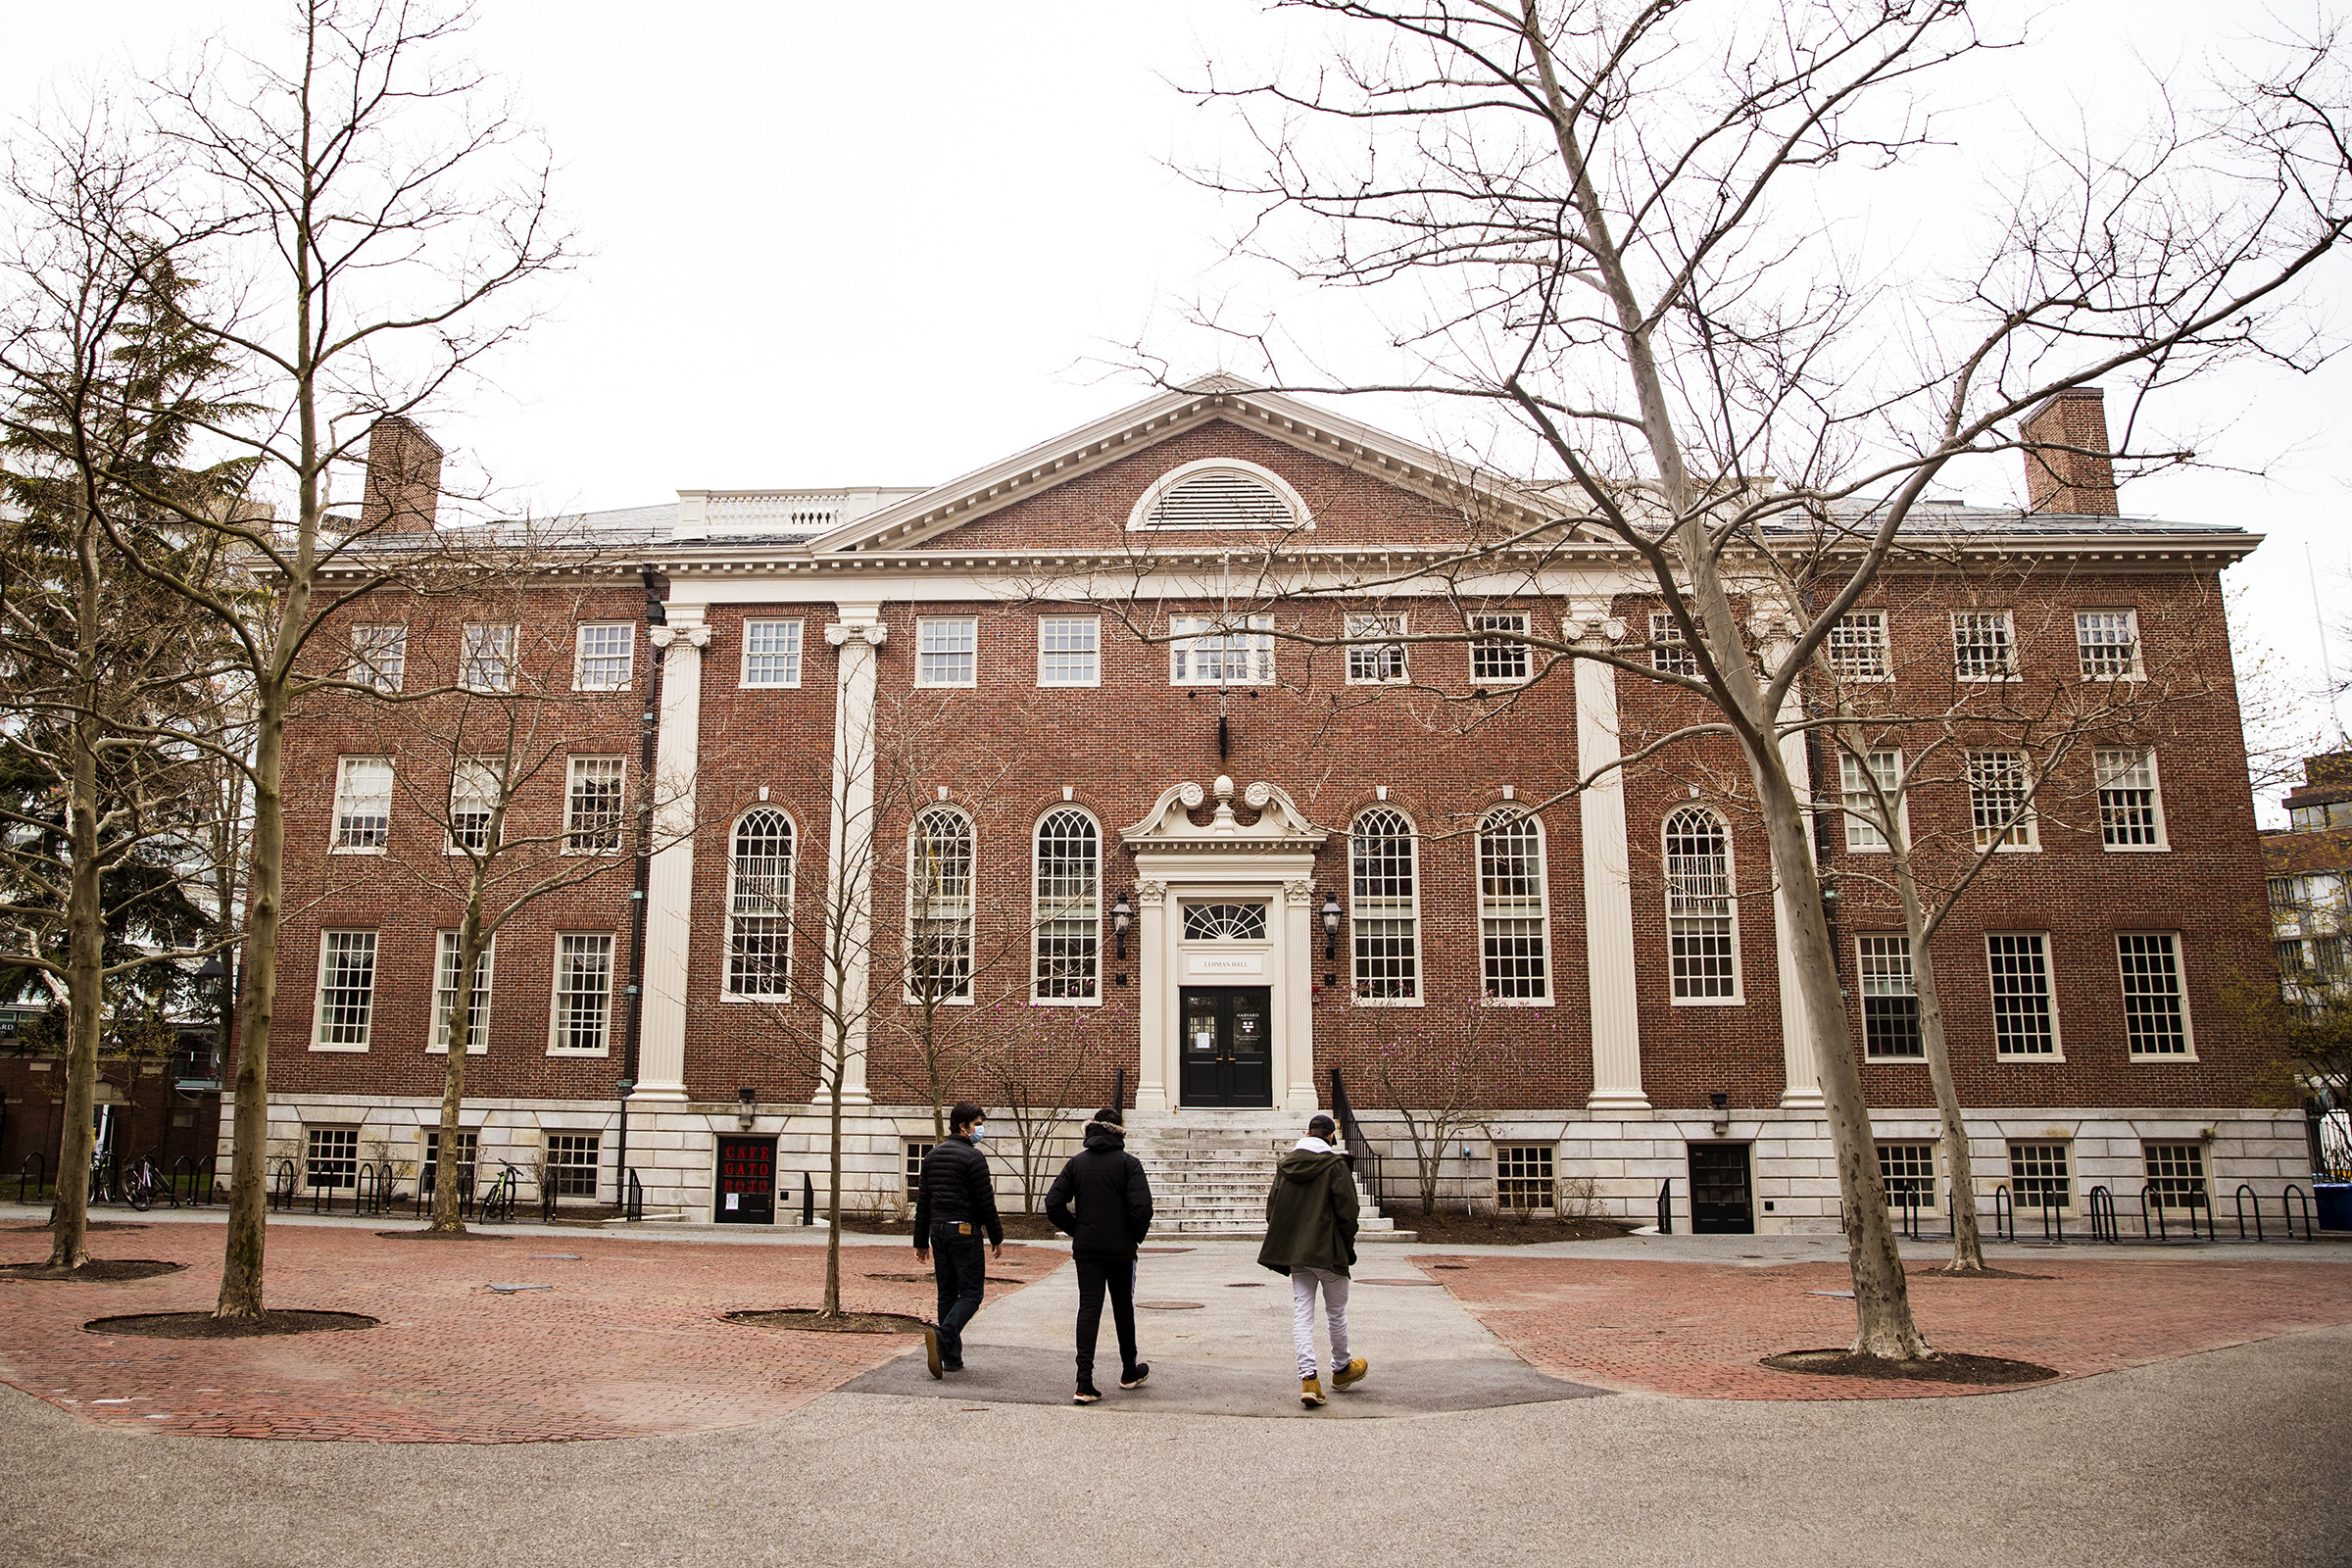 Pedestrians walk through Harvard Yard on the closed Harvard University campus in Cambridge, Massachusetts, U.S., on April 20, 2020.